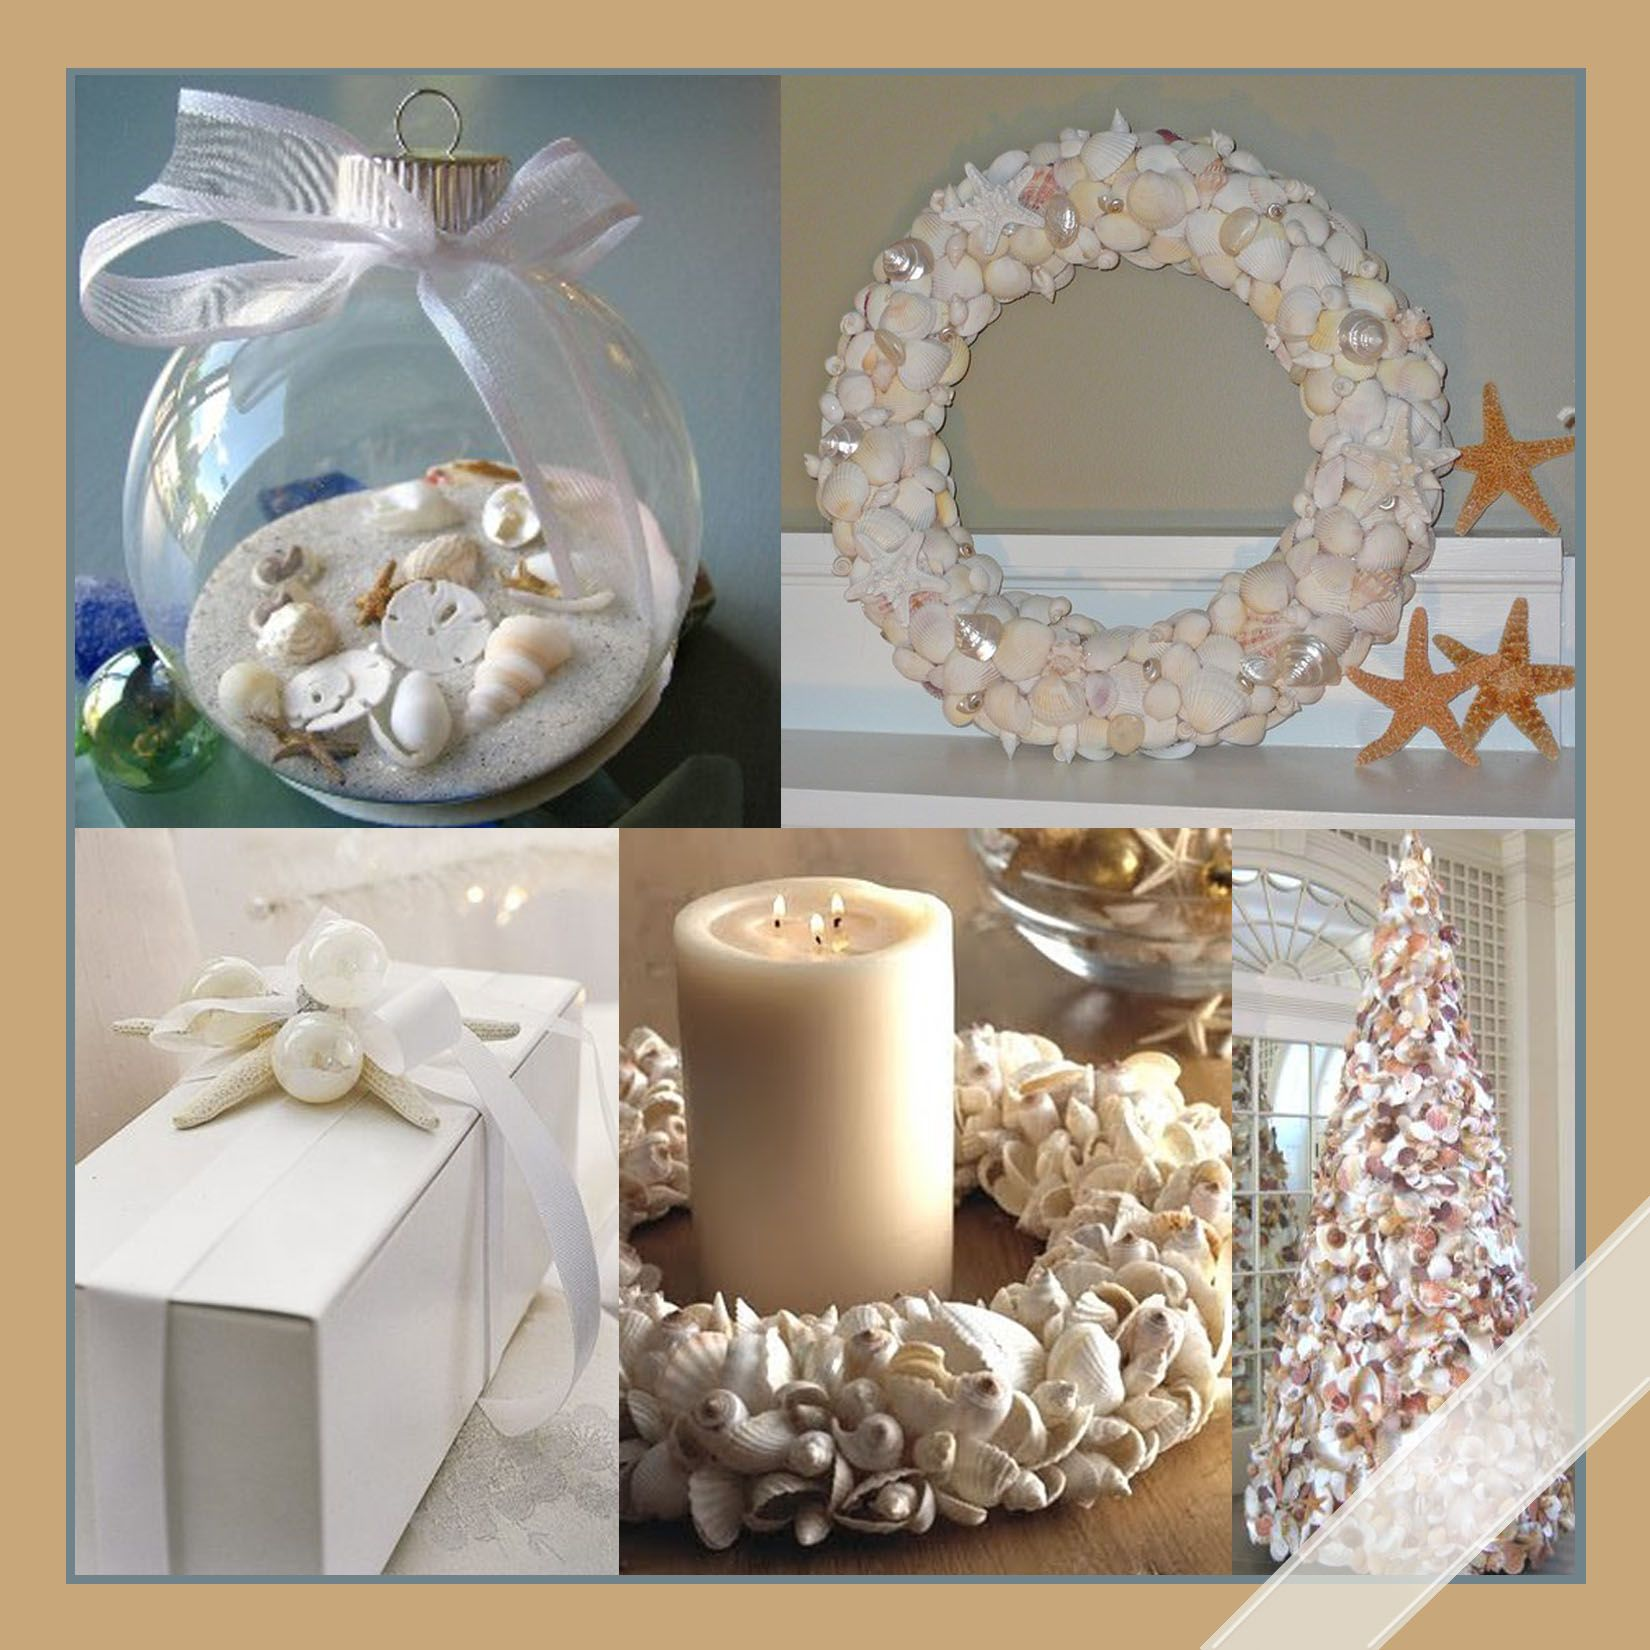 Beach Items For Decorating | Beach Theme Christmas Decor Ideas: